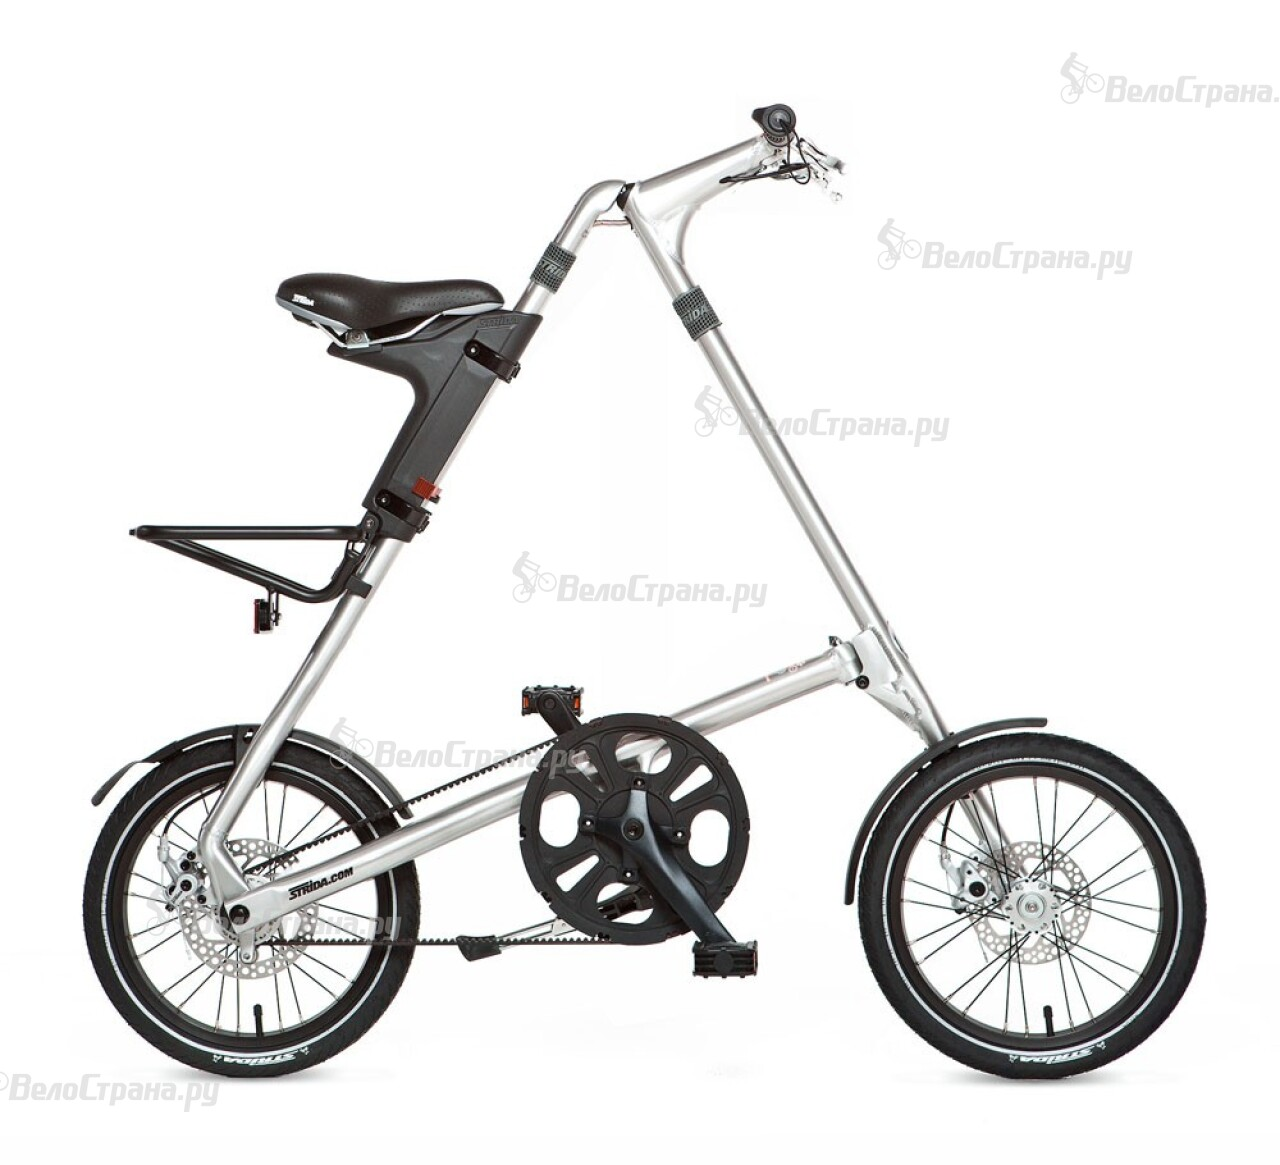 Велосипед Strida 5.2 (2013) велосипед wheeler runner 2013